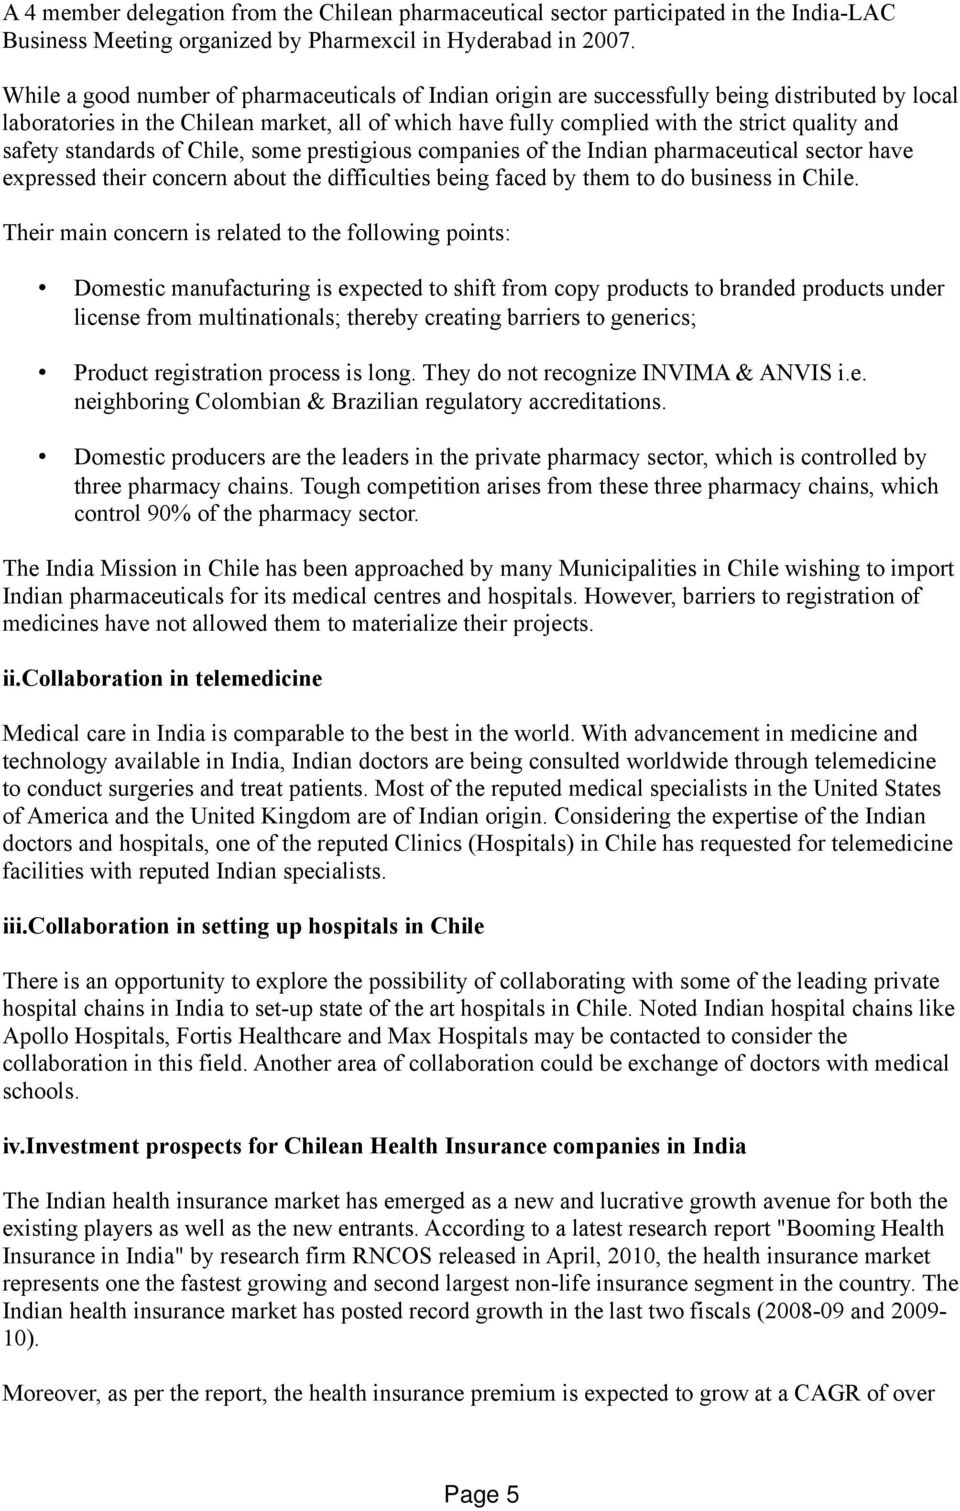 safety standards of Chile, some prestigious companies of the Indian pharmaceutical sector have expressed their concern about the difficulties being faced by them to do business in Chile.